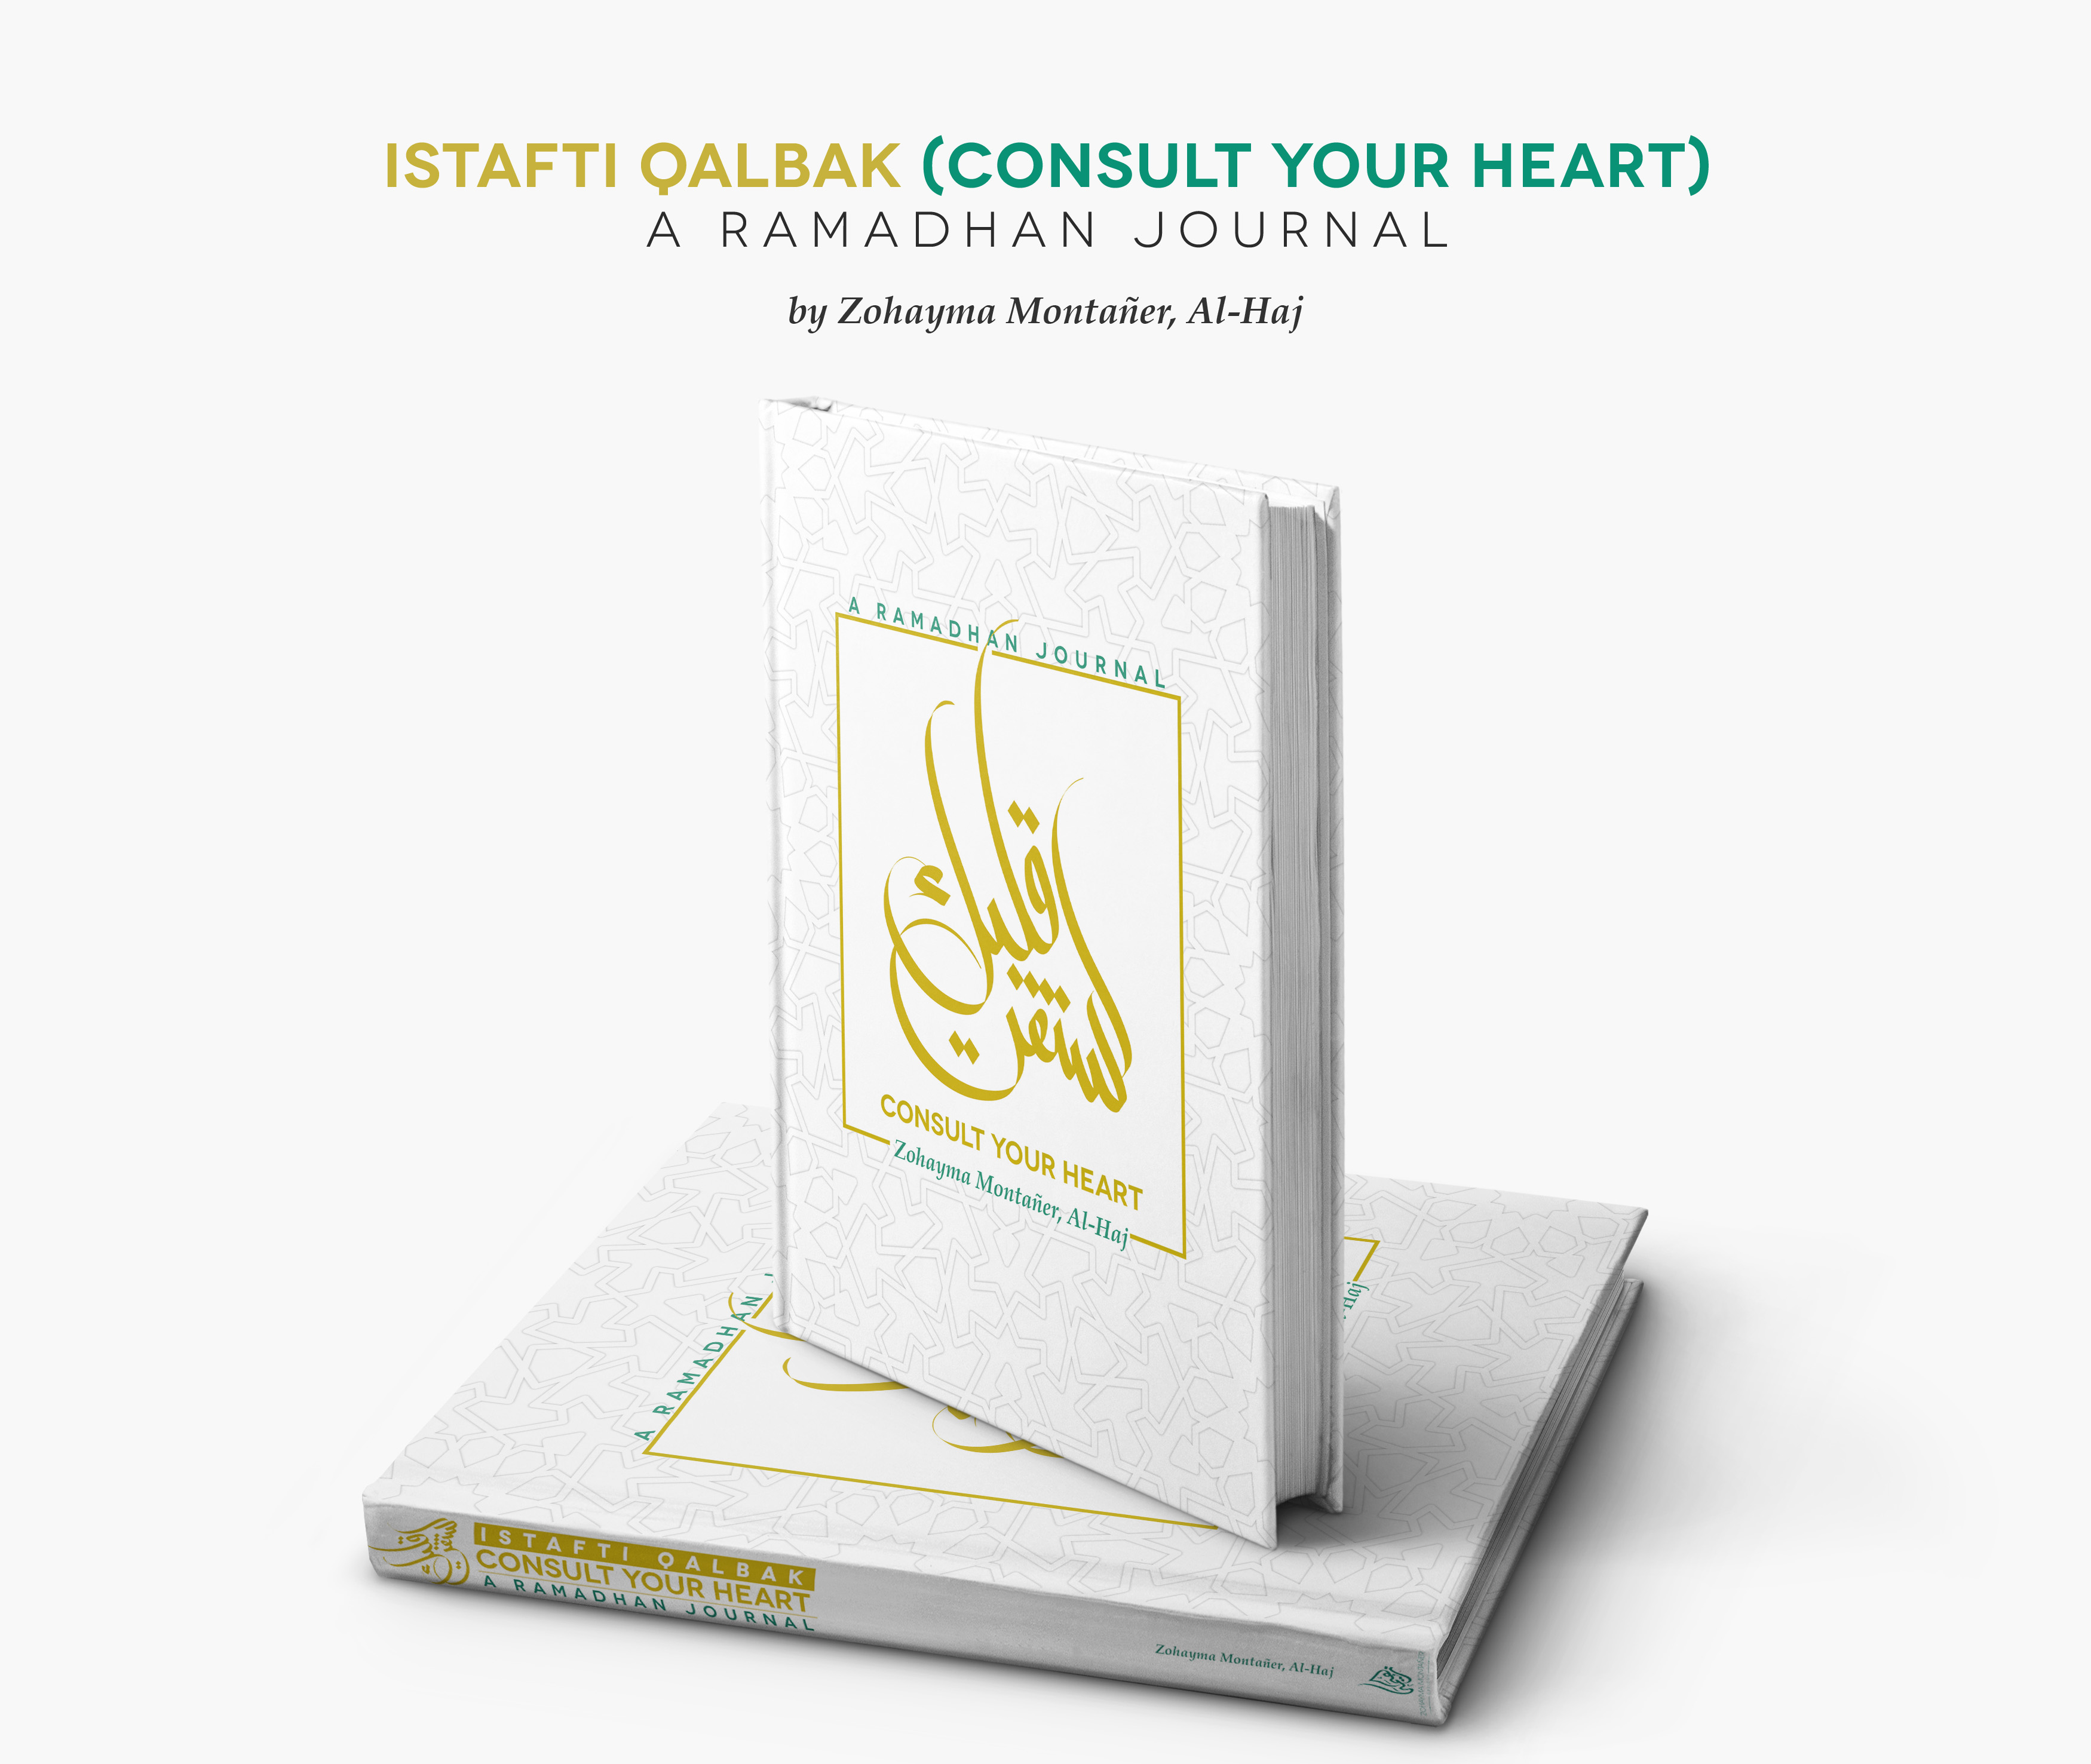 Istafti Qalbak – Consult Your Heart (A Ramadhan Journal)